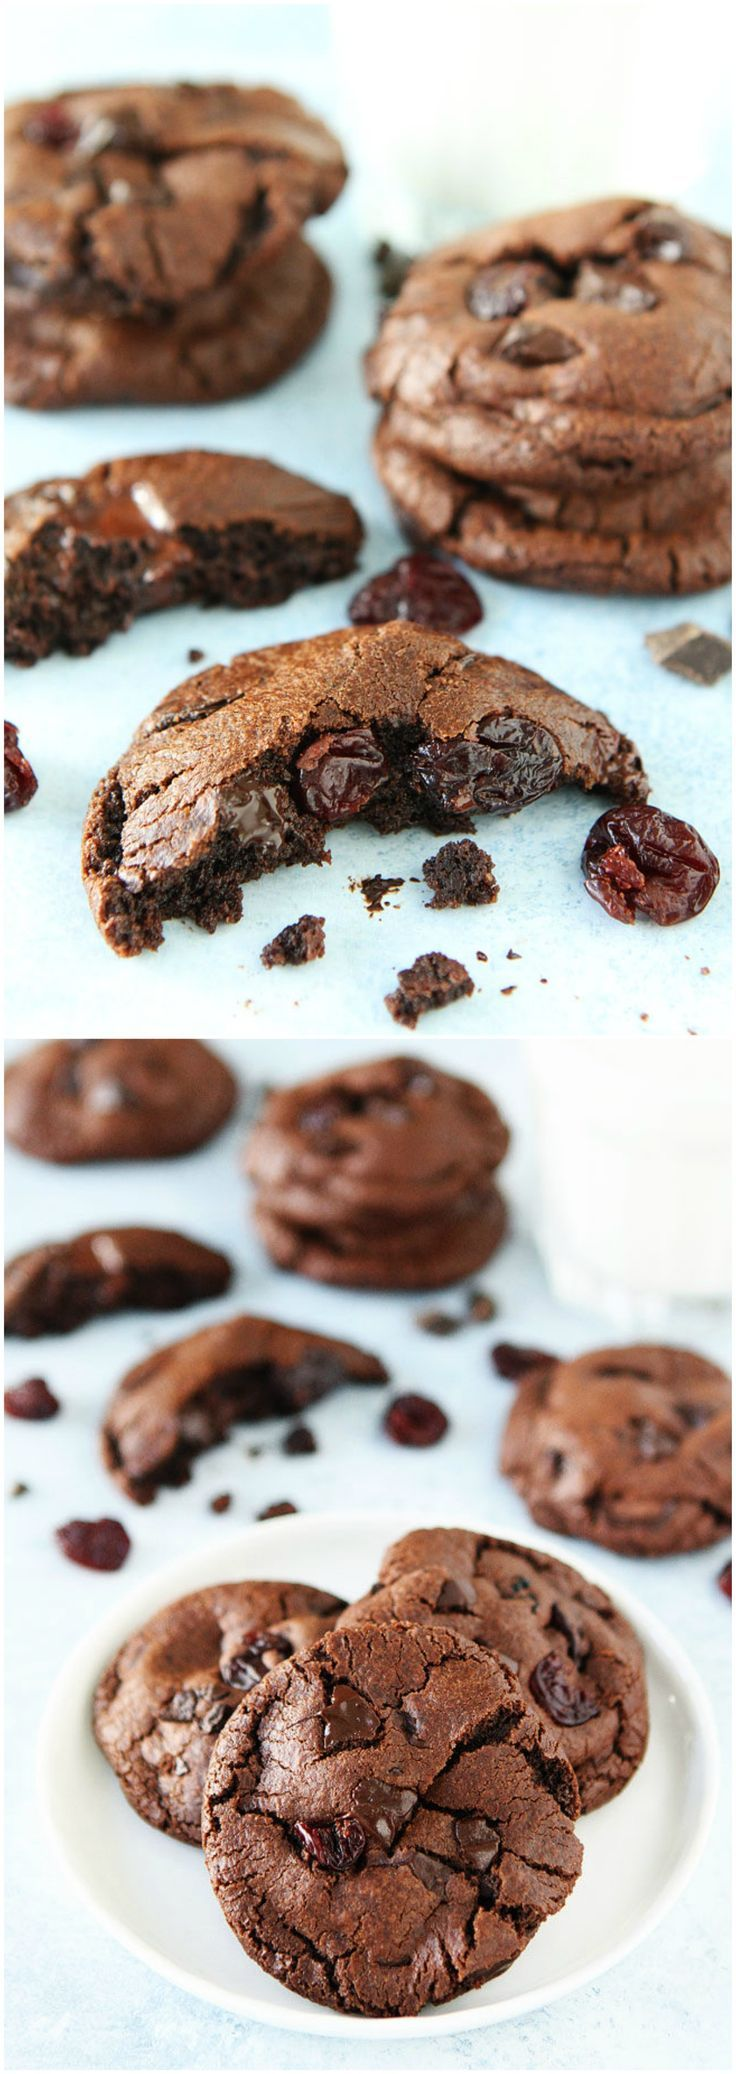 Chocolate Cherry Cookies Recipe on twopeasandtheirpod.com Rich chocolate cookies with chocolate chunks and dried cherries. These cookies are heavenly!